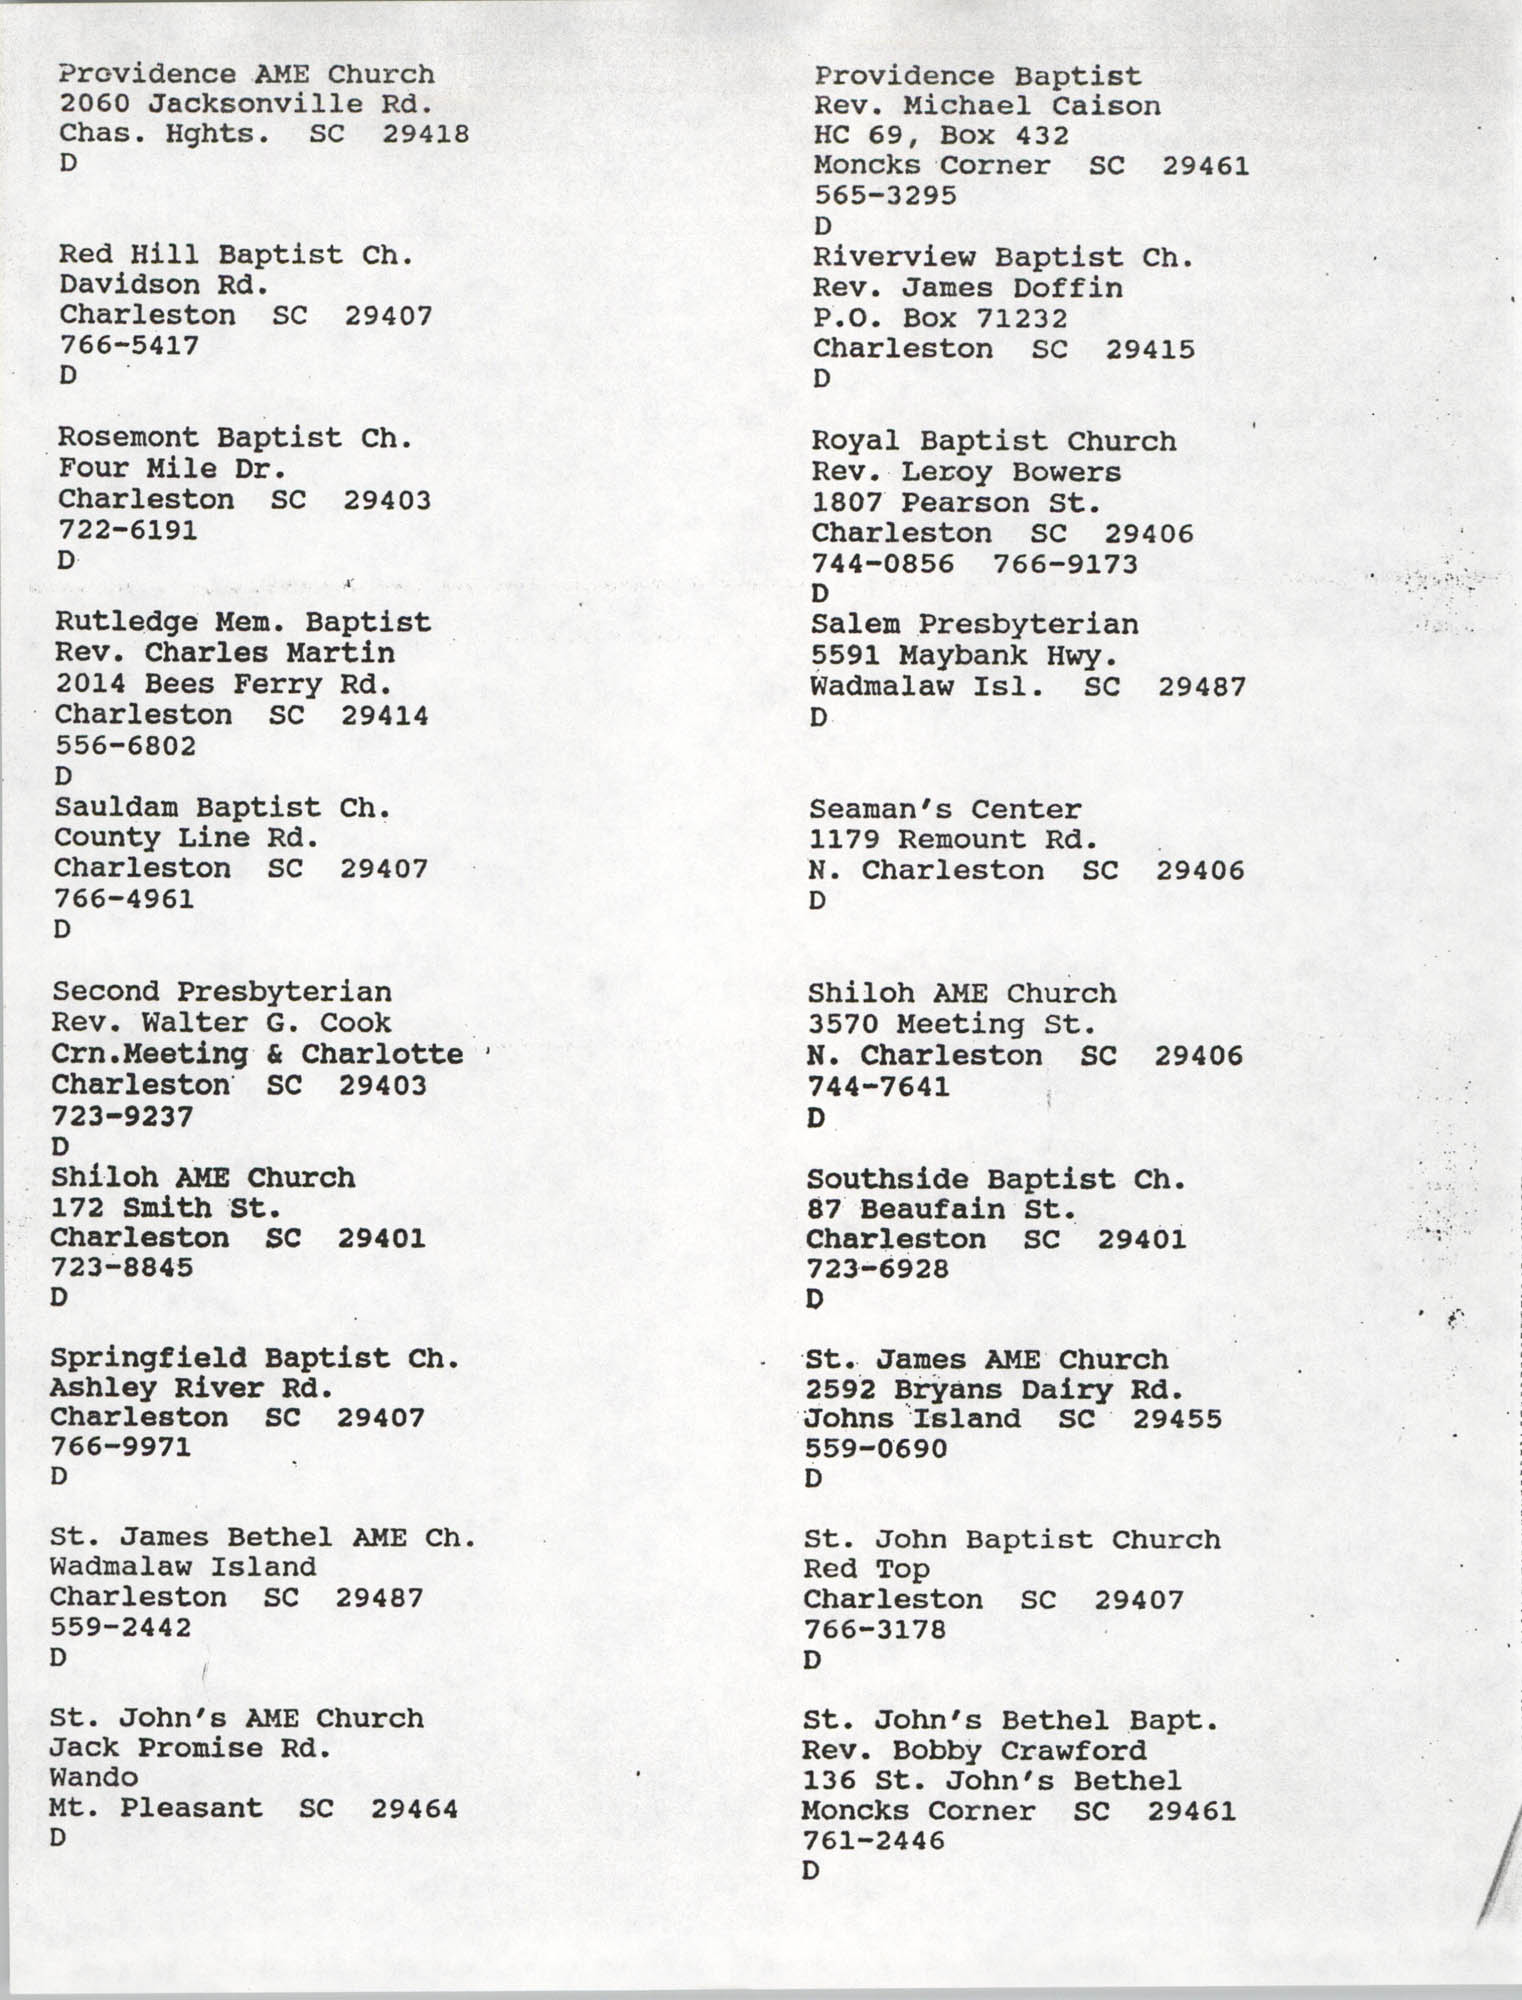 Church Contact List, Charleston Chapter of the NAACP, Page 23